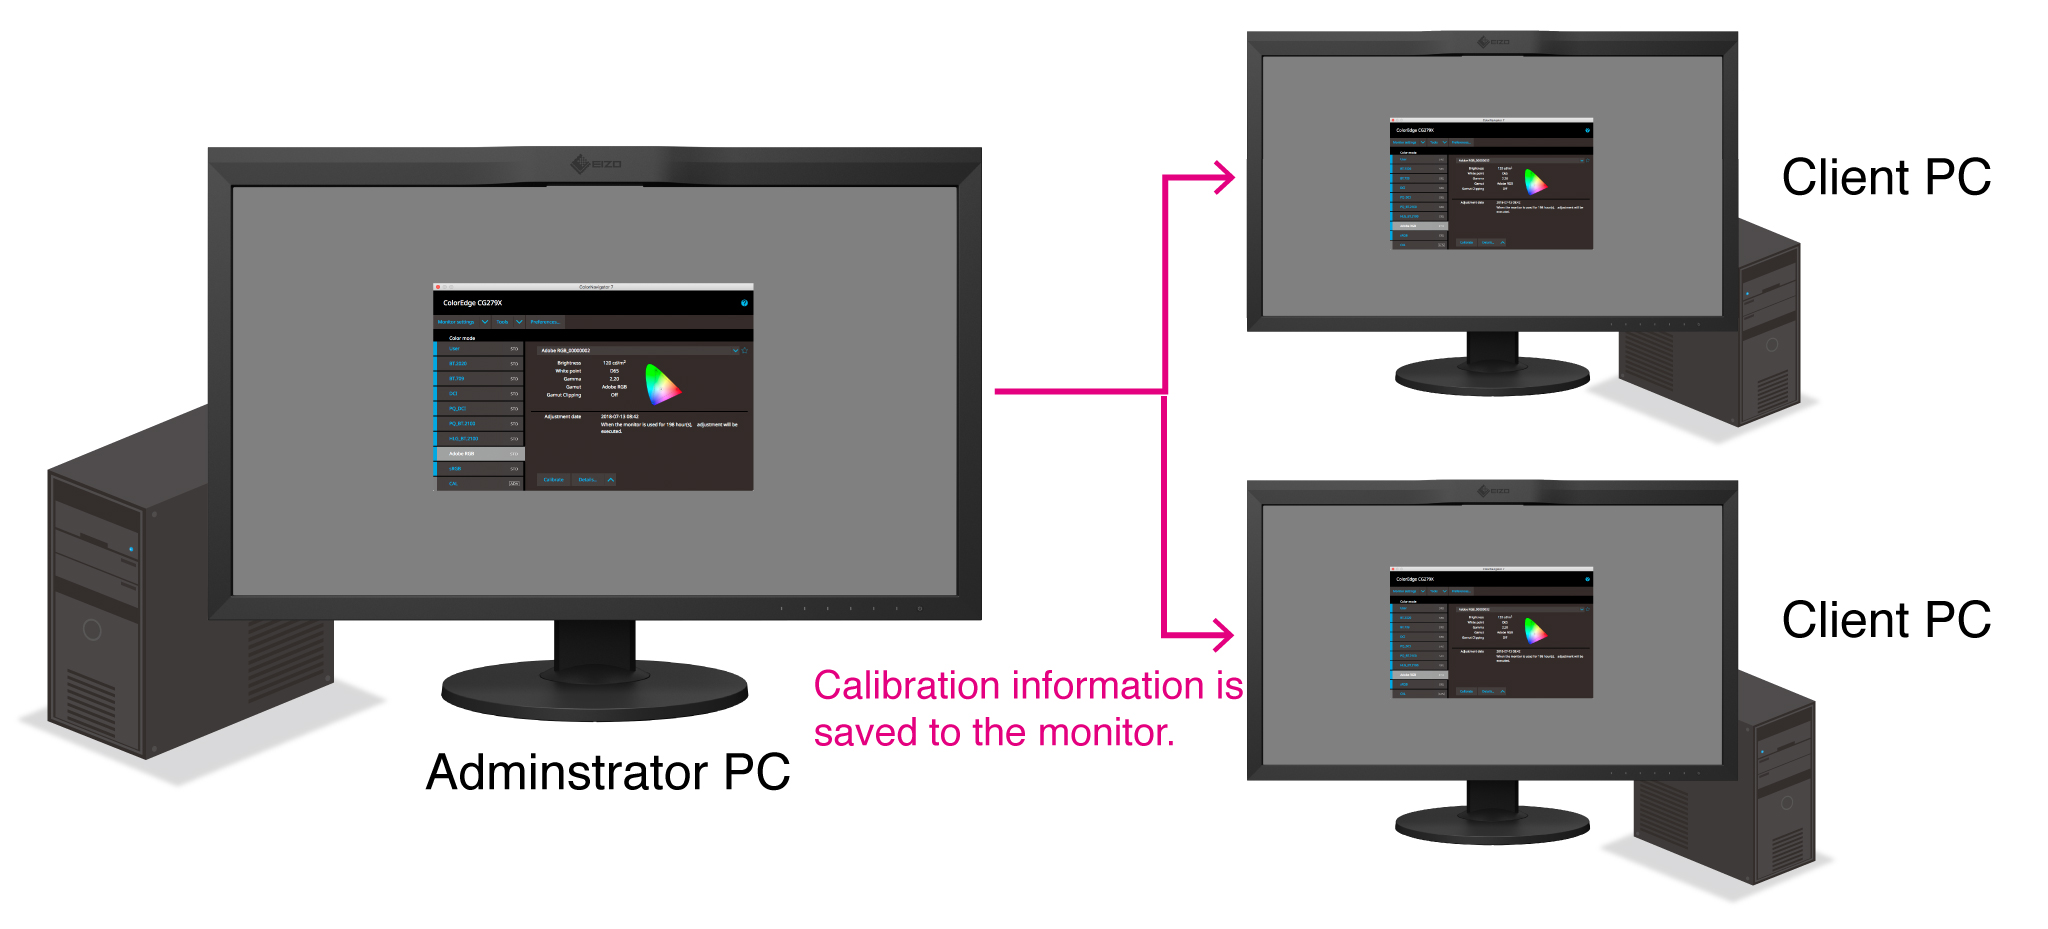 Maintain Calibration Settings with Different PCs